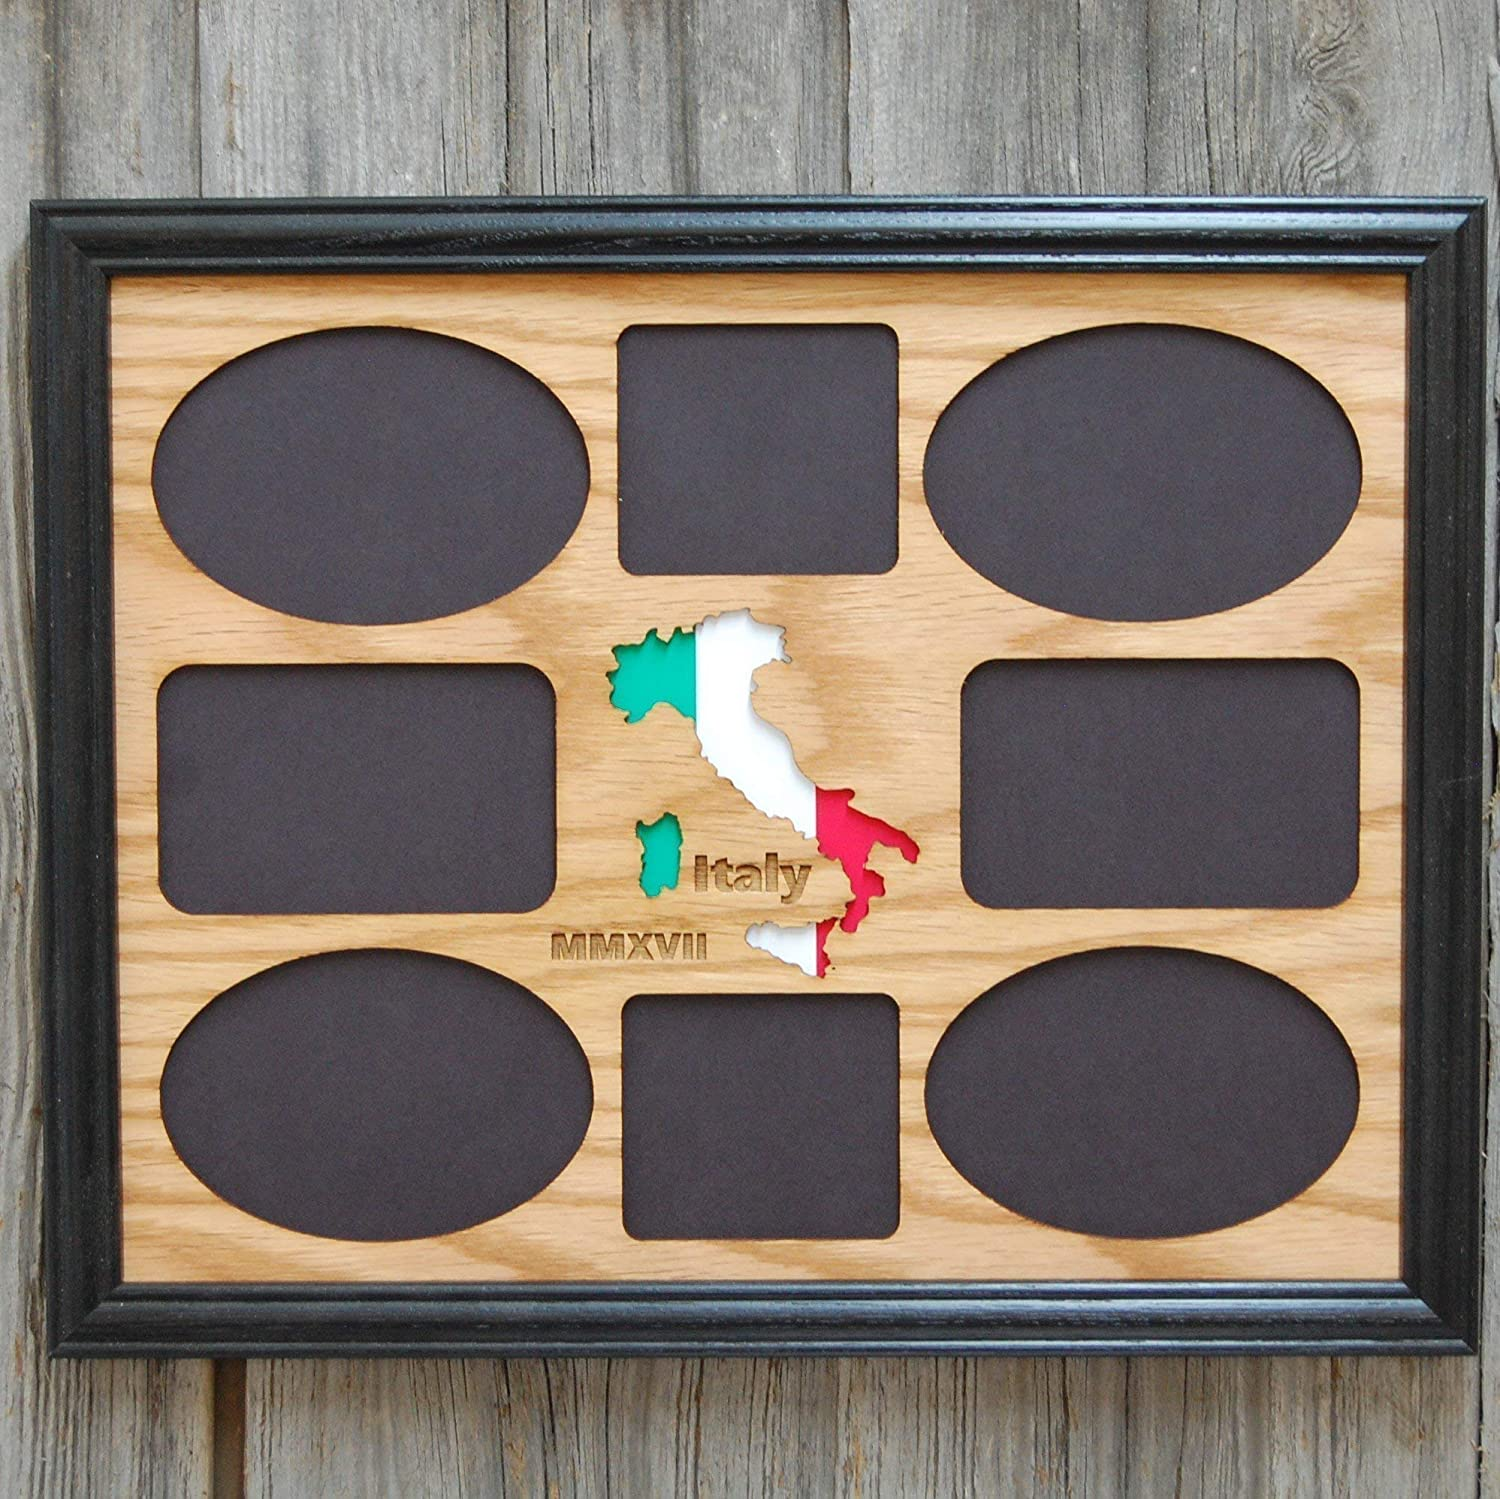 11x14 Italy Picture Frame